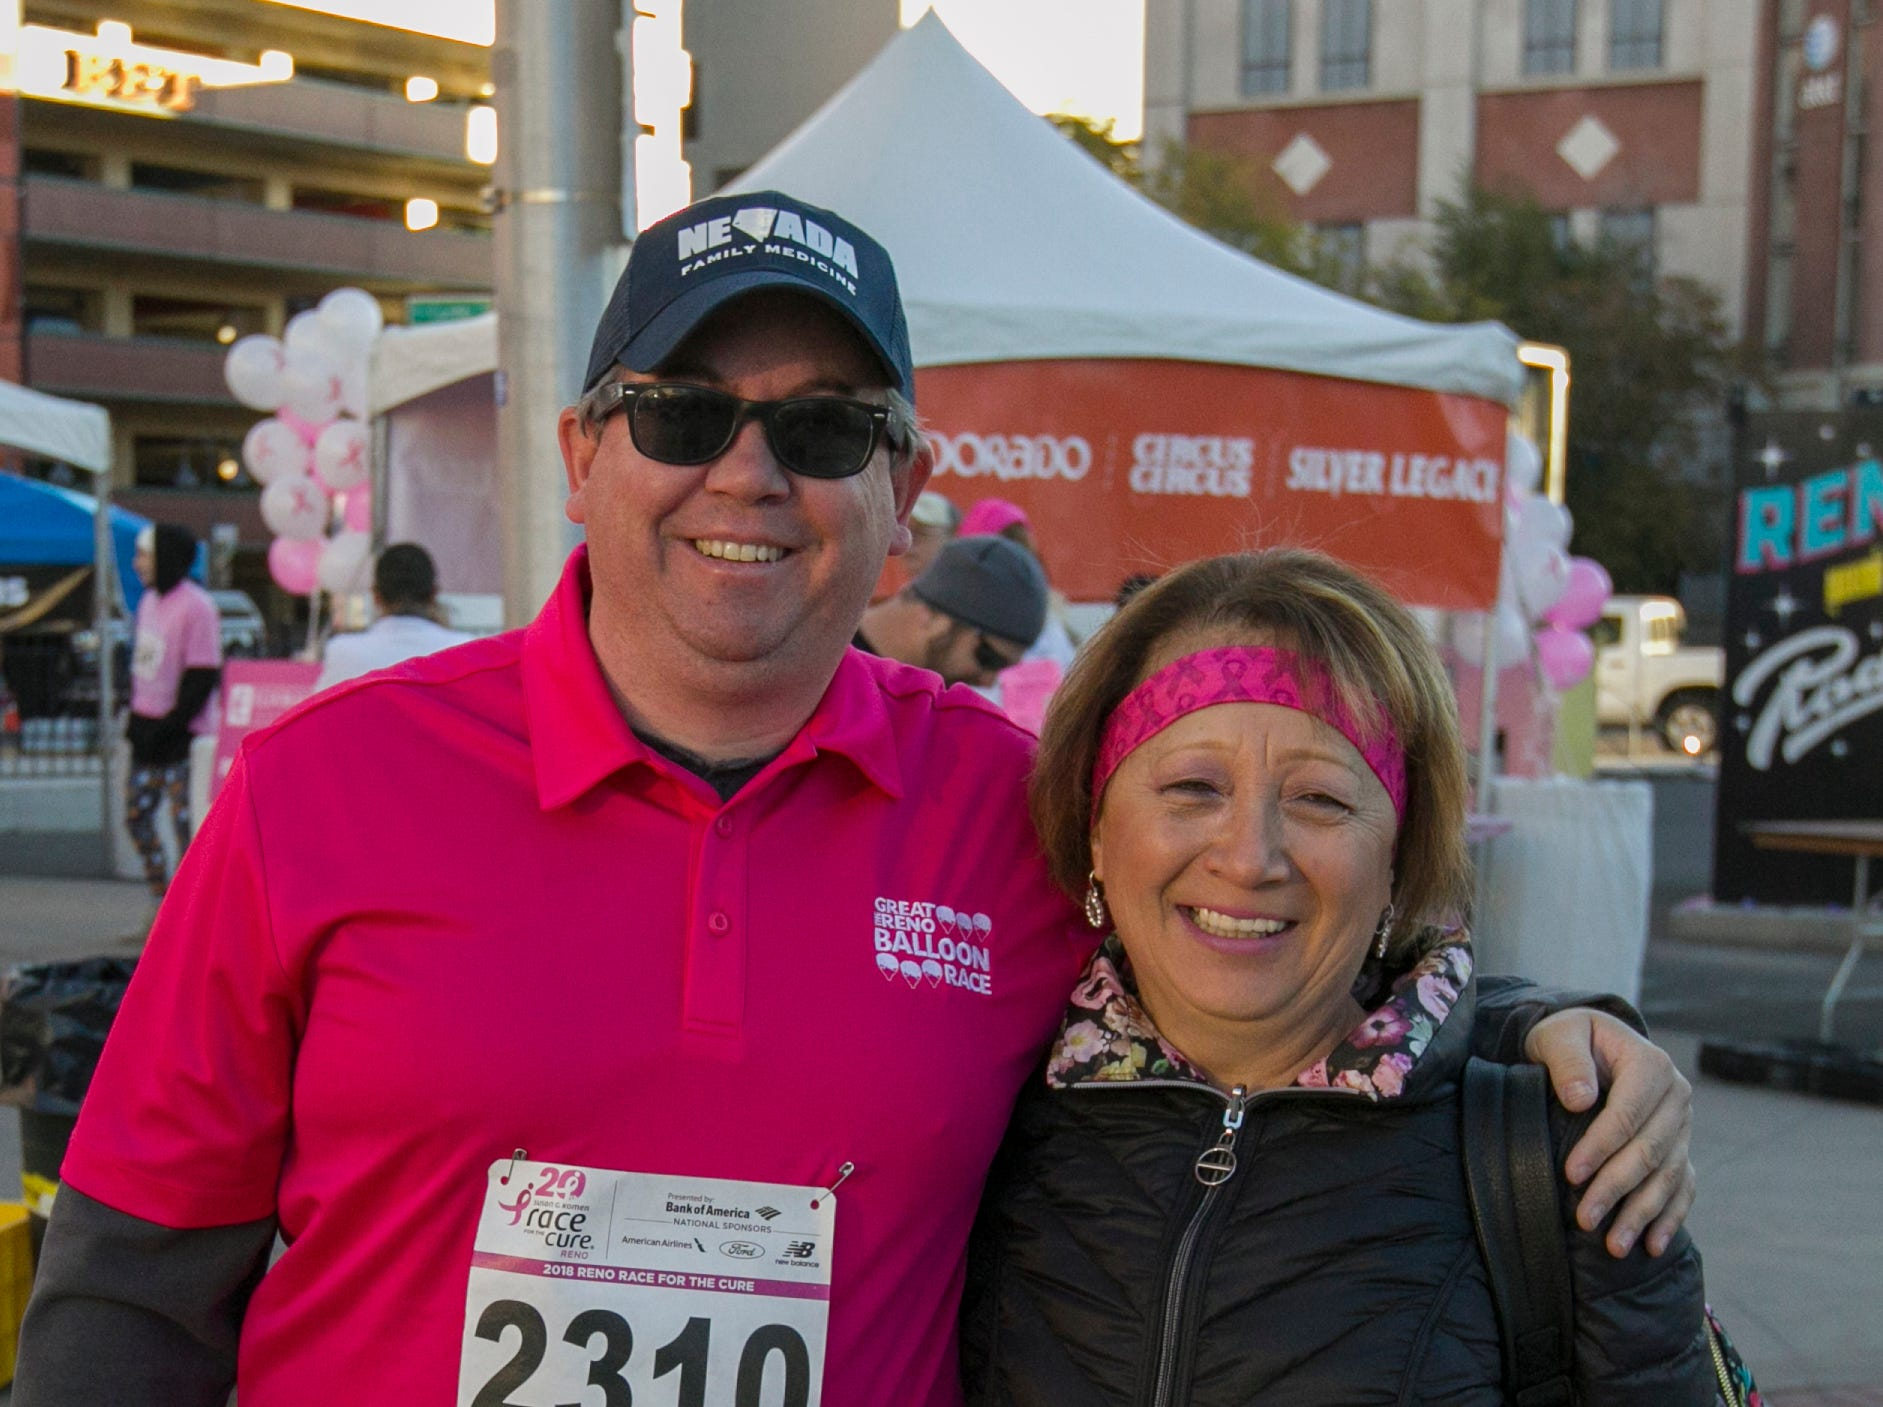 Aaron Dieringer and Rosalinda Rawlings during the Susan G. Komen Race for the Cure on Sunday, October 14,  2018 in downtown Reno.